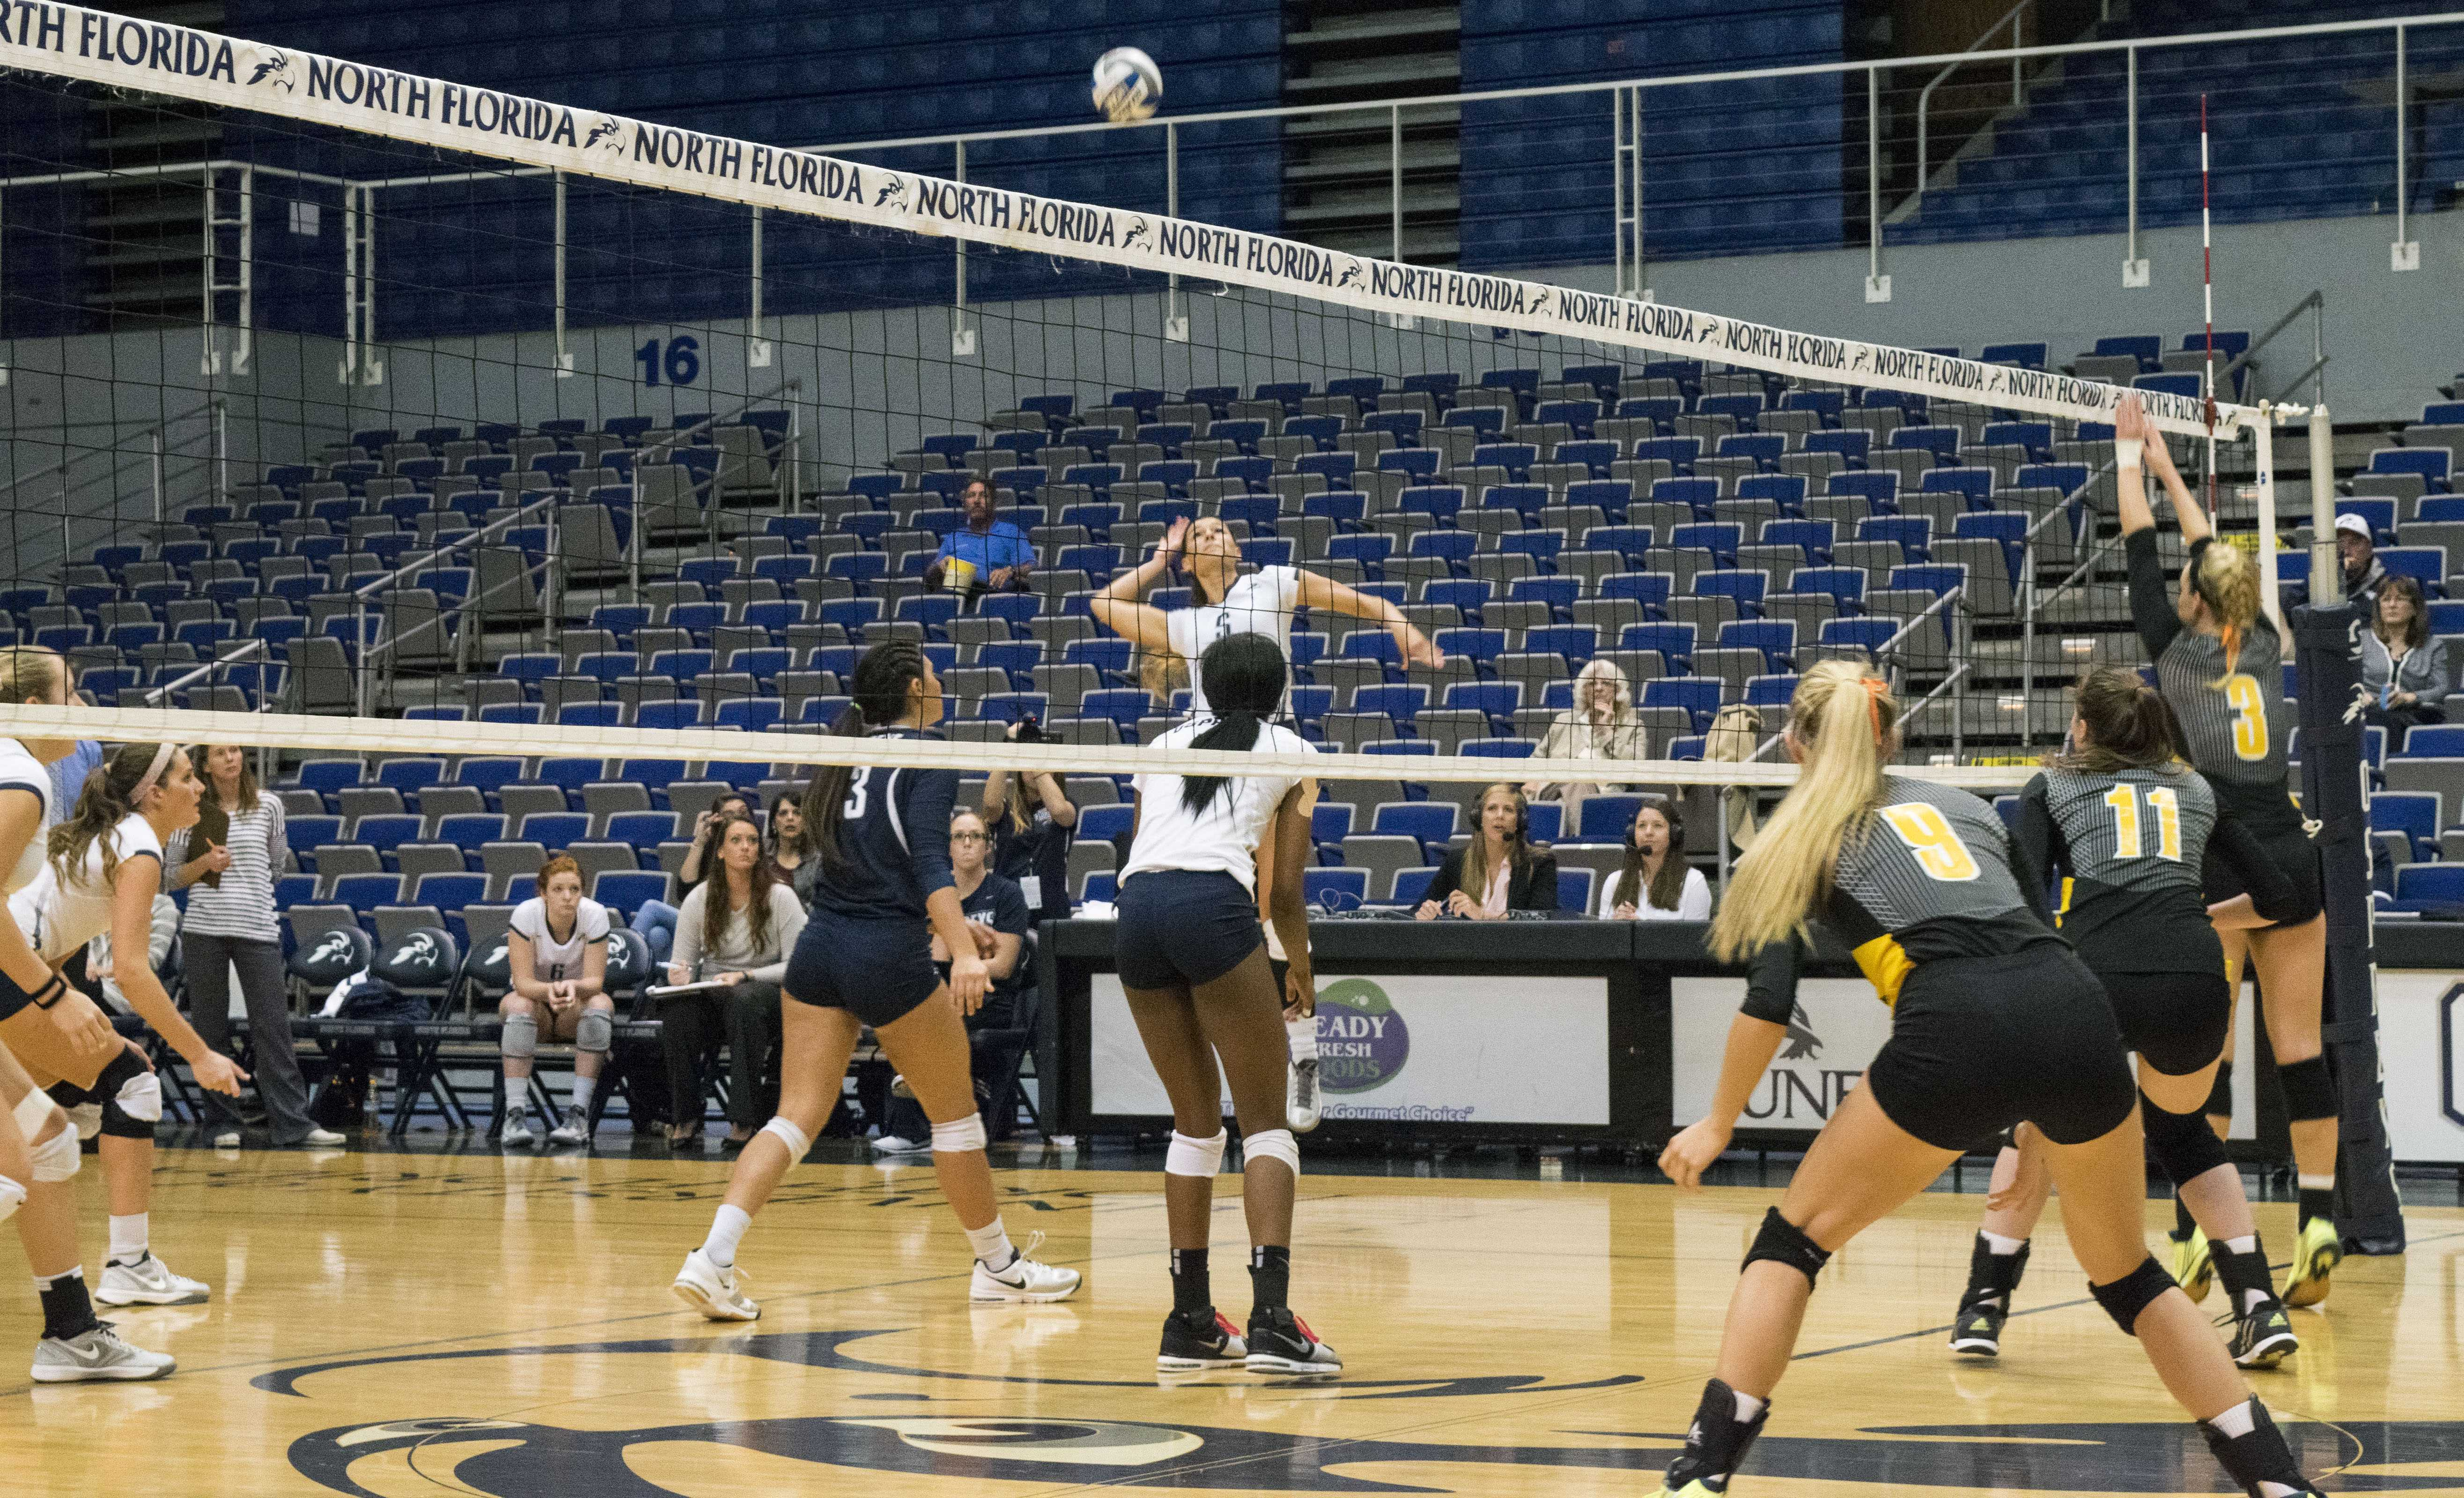 UNF volleyball sweep Kennesaw State 3-0, clinch fifth seed for A-Sun tournament